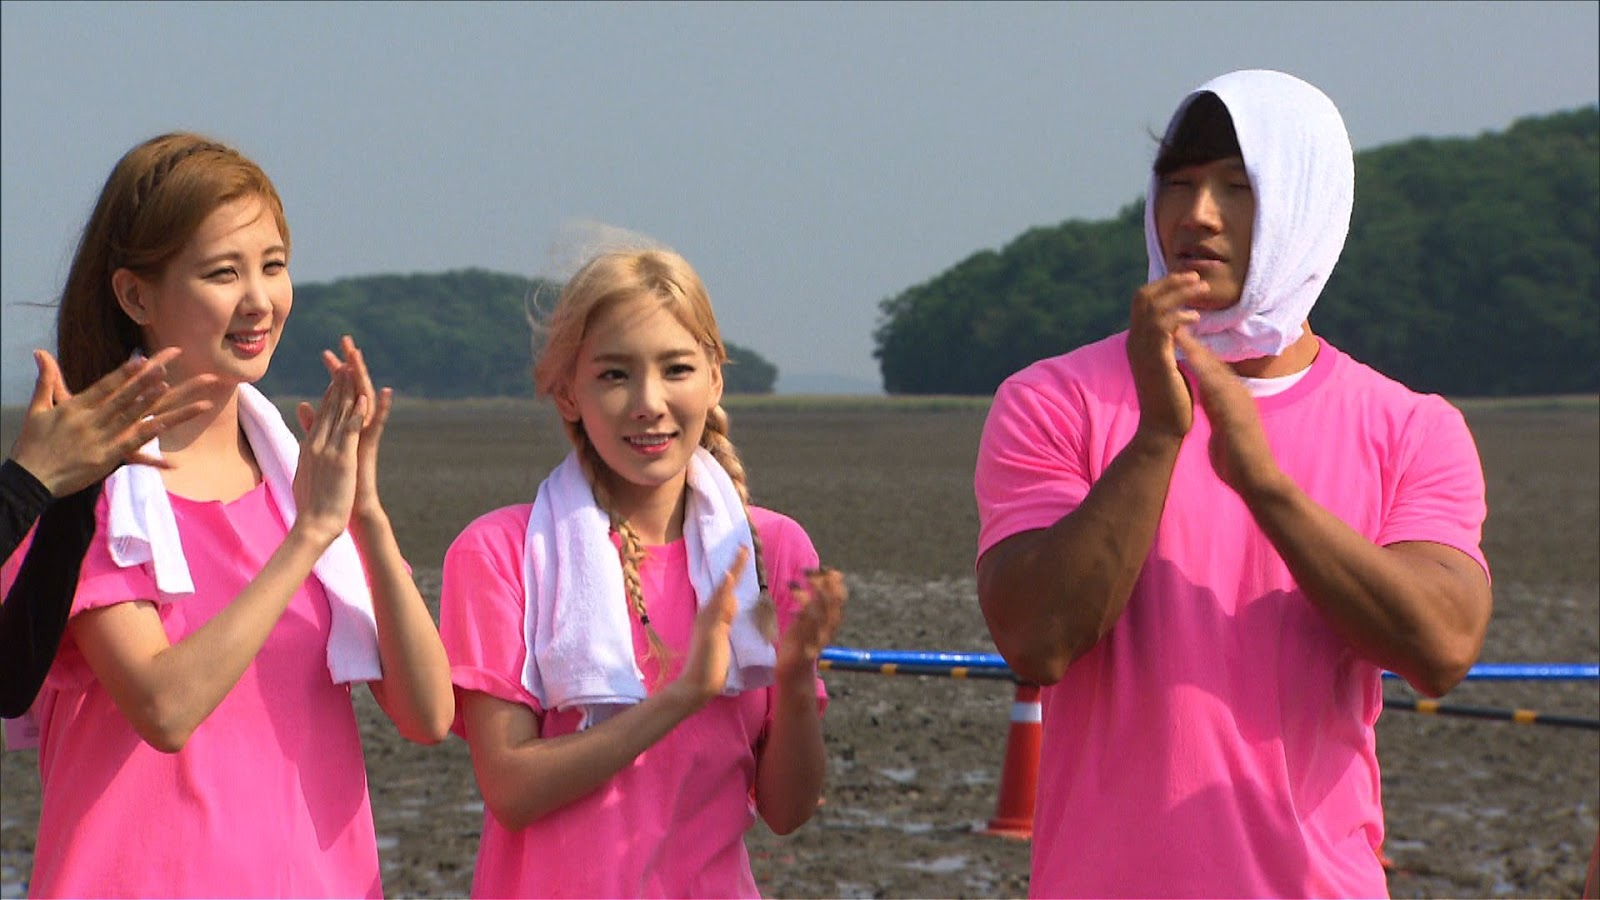 SNSD on 'Running Man' (English Subbed) - SNSD | OH!GG | f(x)